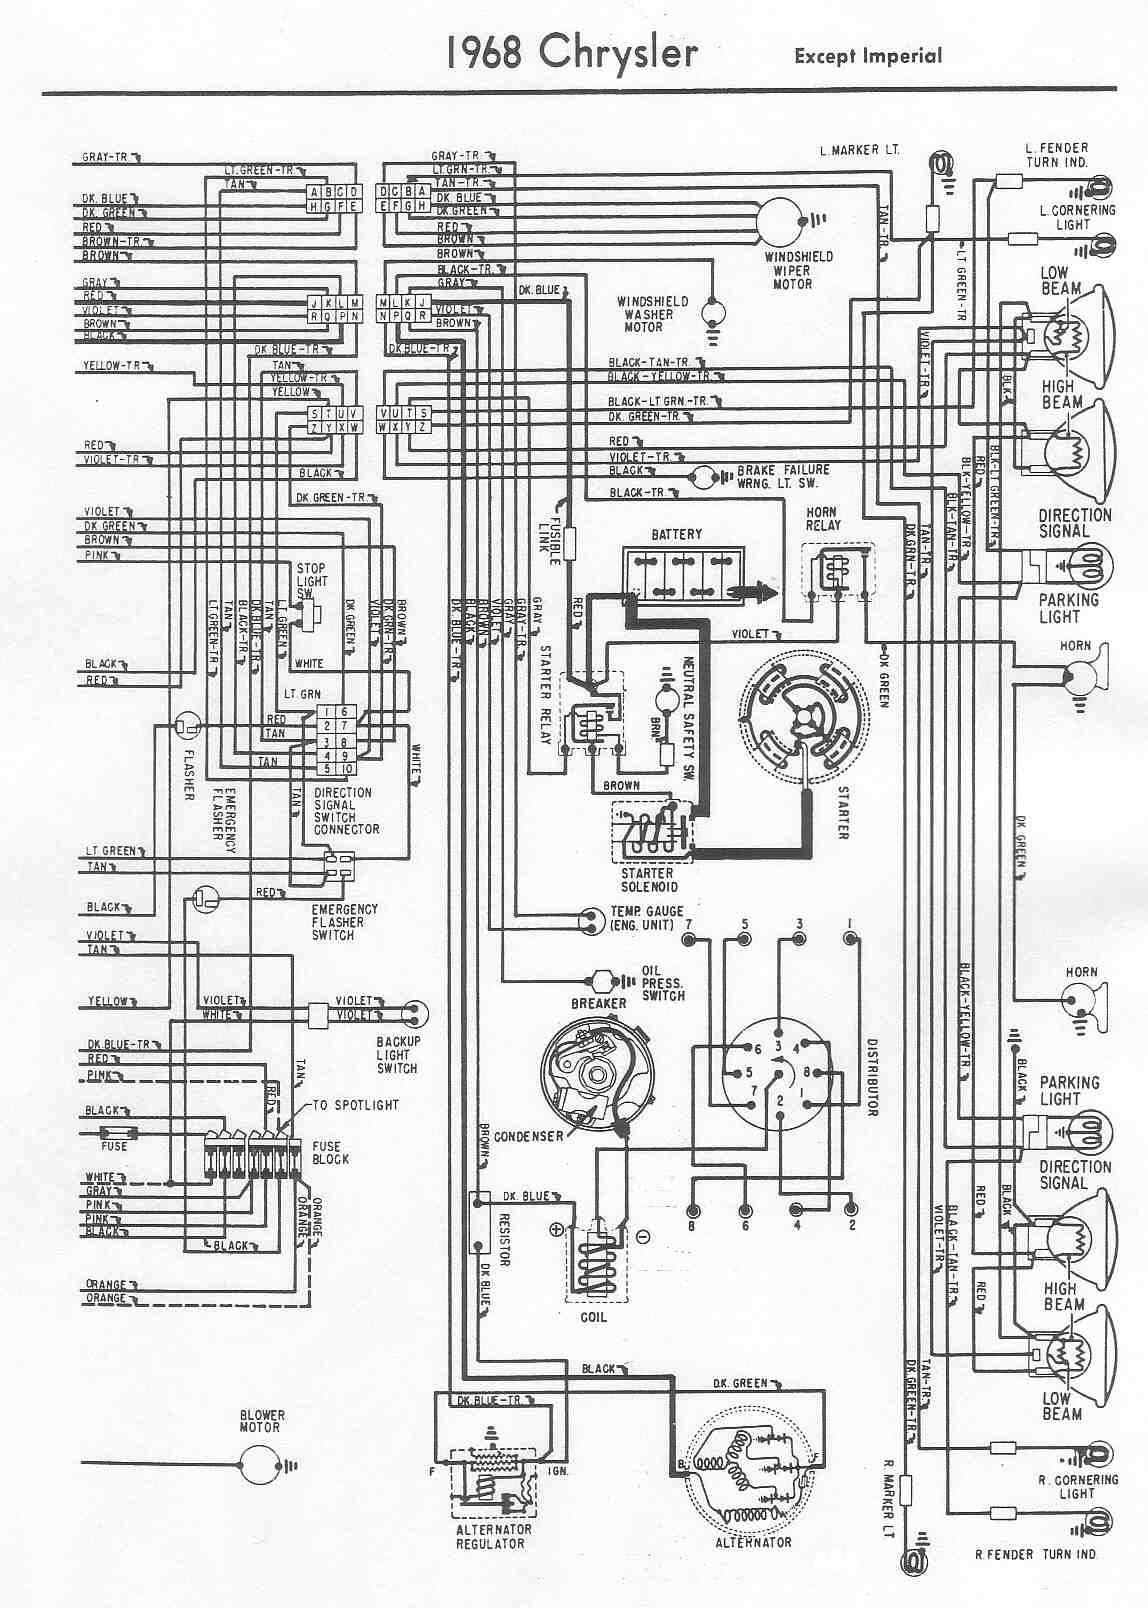 small resolution of chrysler car manuals wiring diagrams pdf fault codes 1955 imperial 1951 chrysler new yorker